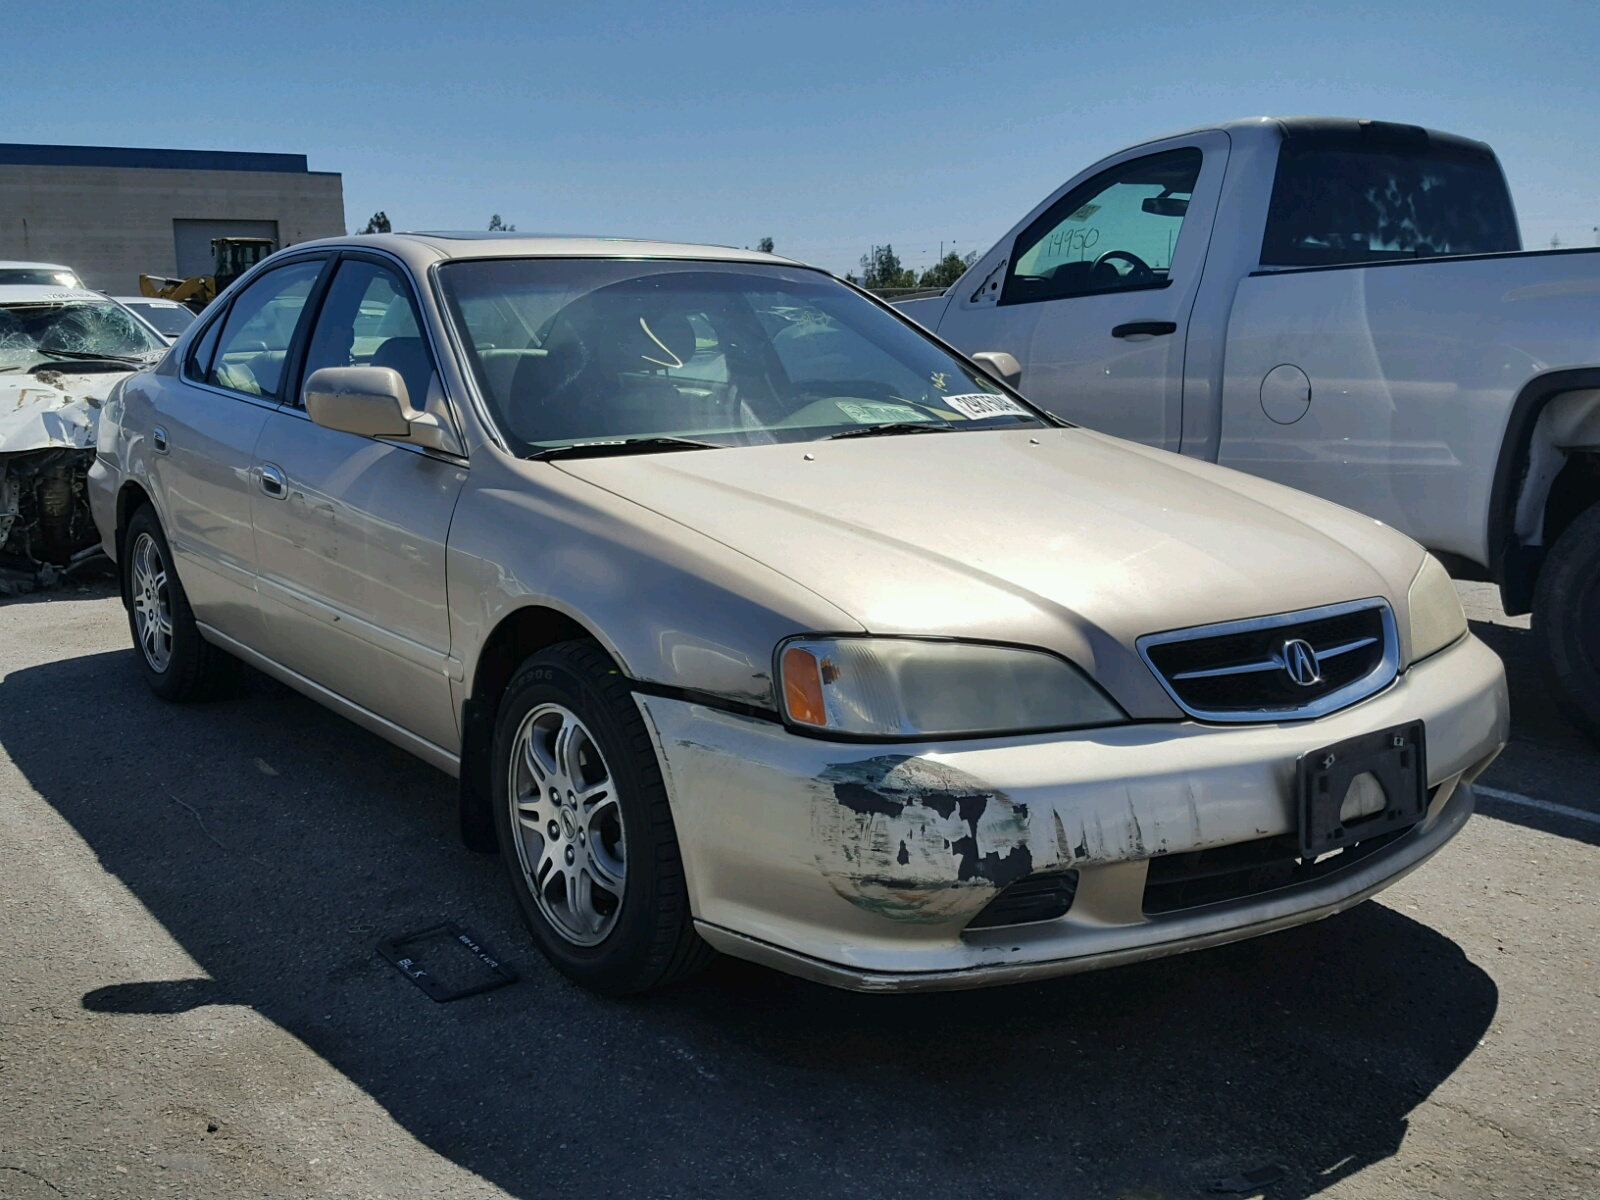 acura used thule sale firewood rack flat and locations pictures racks thul for nordstrom tsx img roof bike tl